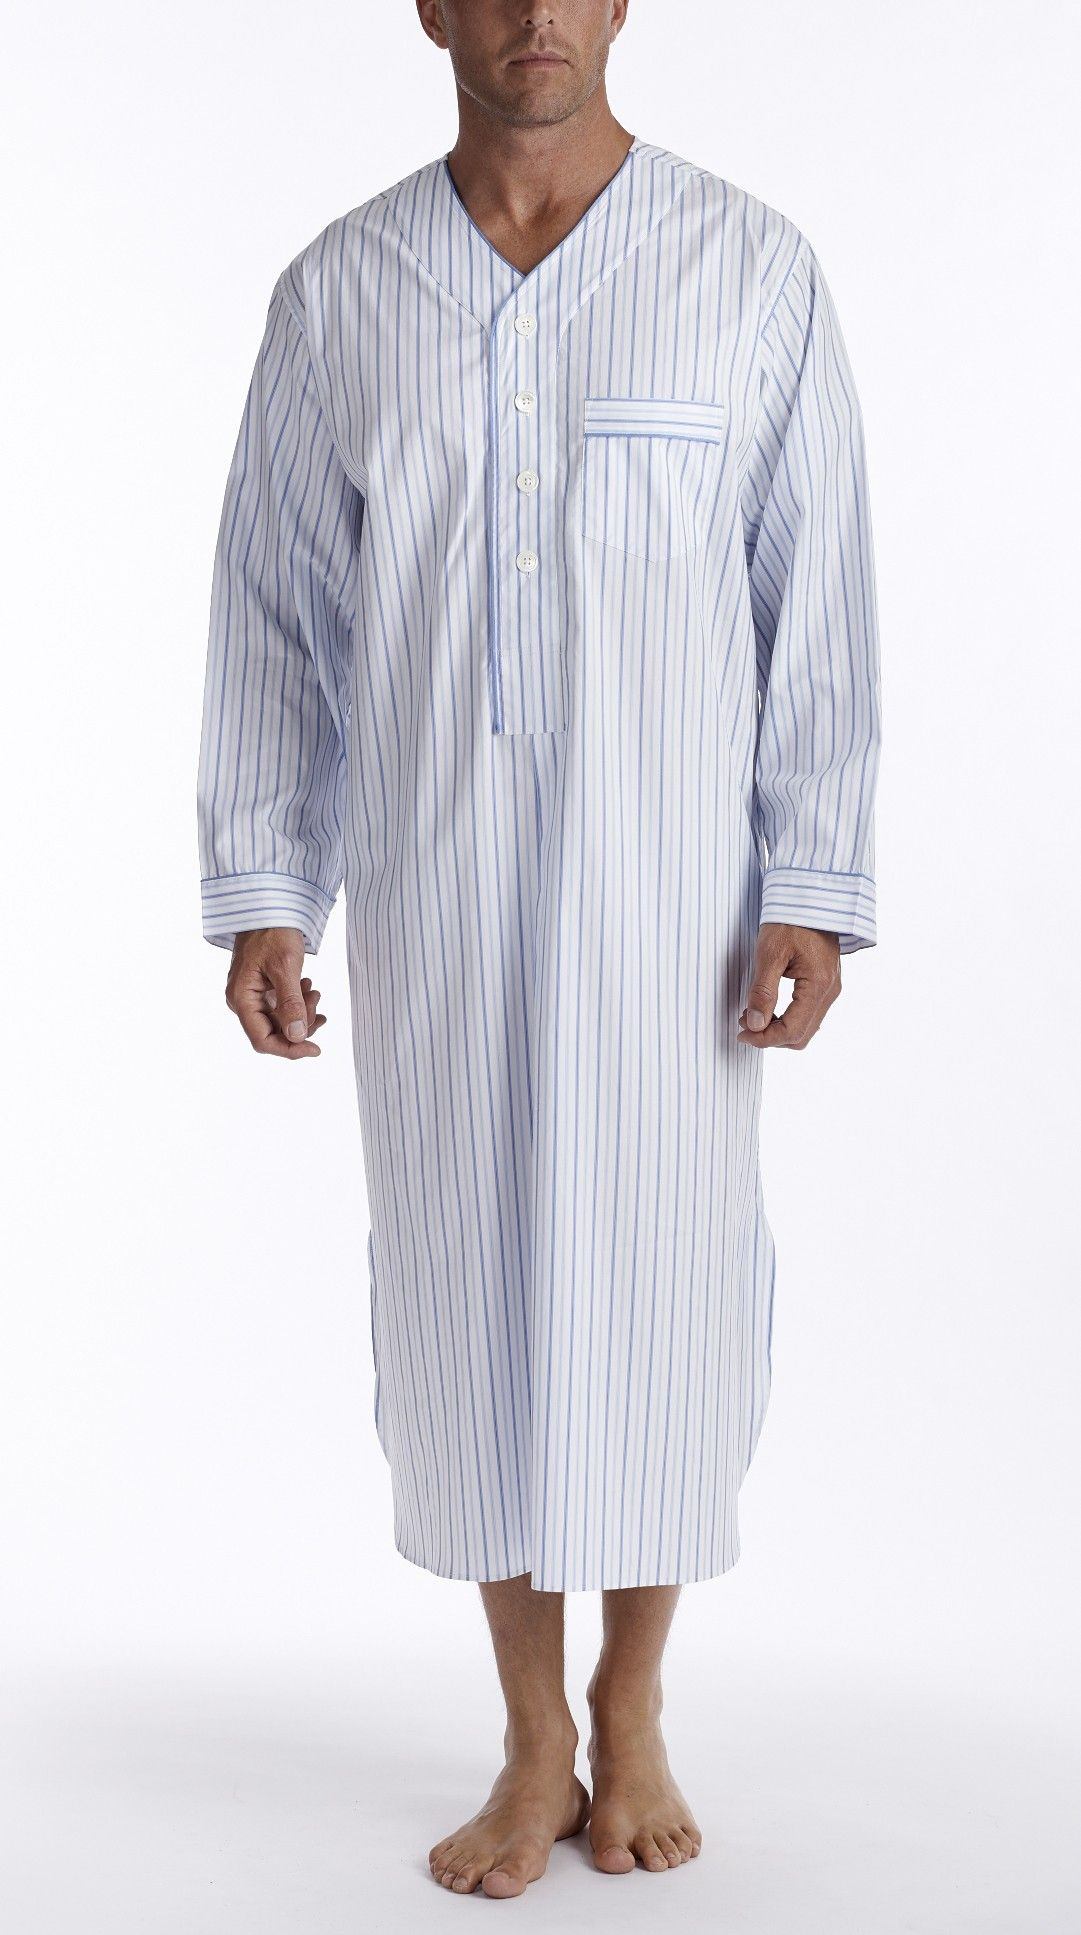 2a2e7d68ae Men s Sleepwear Nightshirts